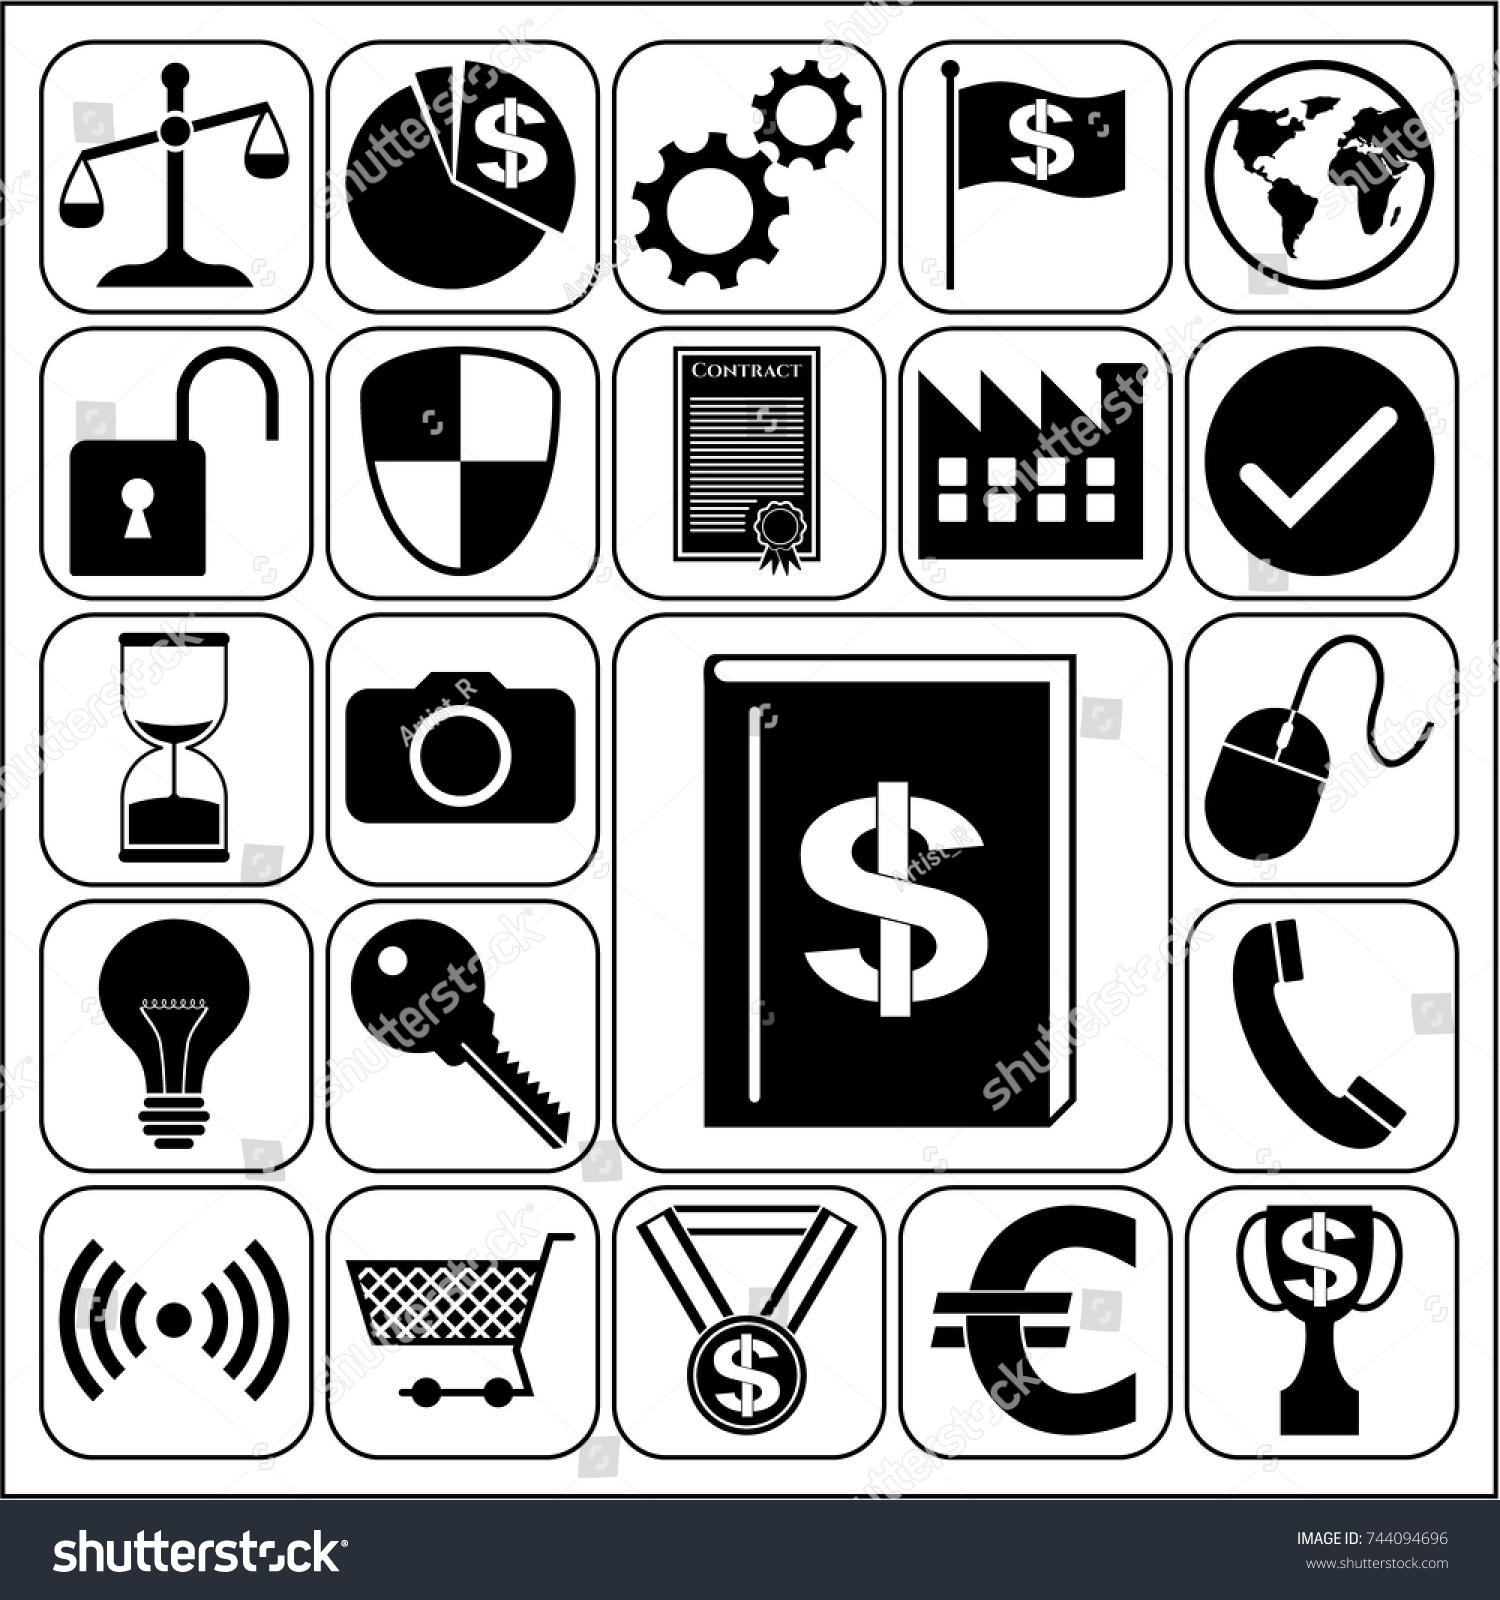 Set 22 Business Icons Symbols Collection Stock Vector 744094696